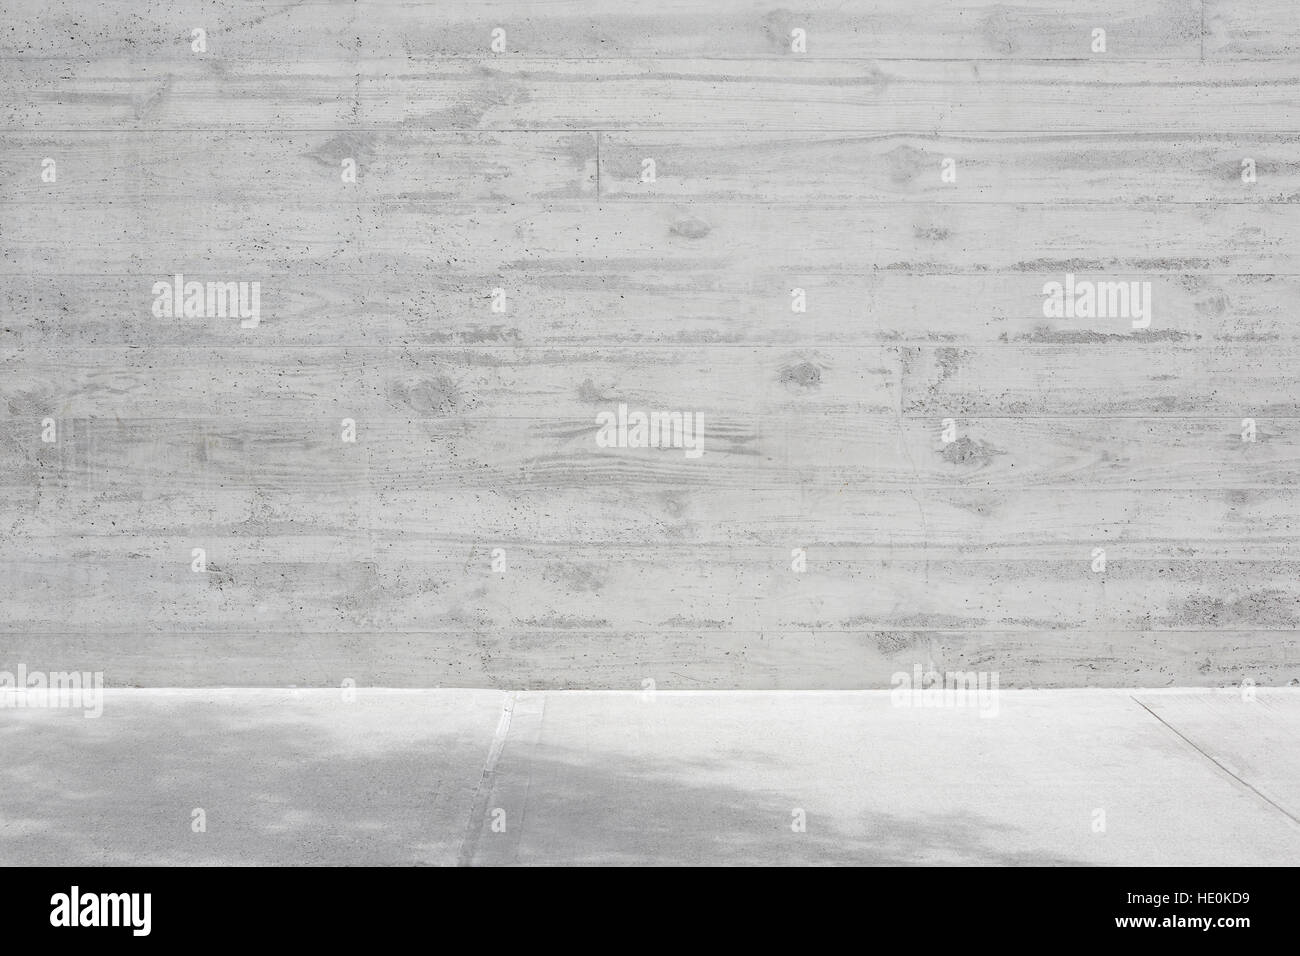 Gray concrete rough wall with wooden veining and empty floor background - Stock Image